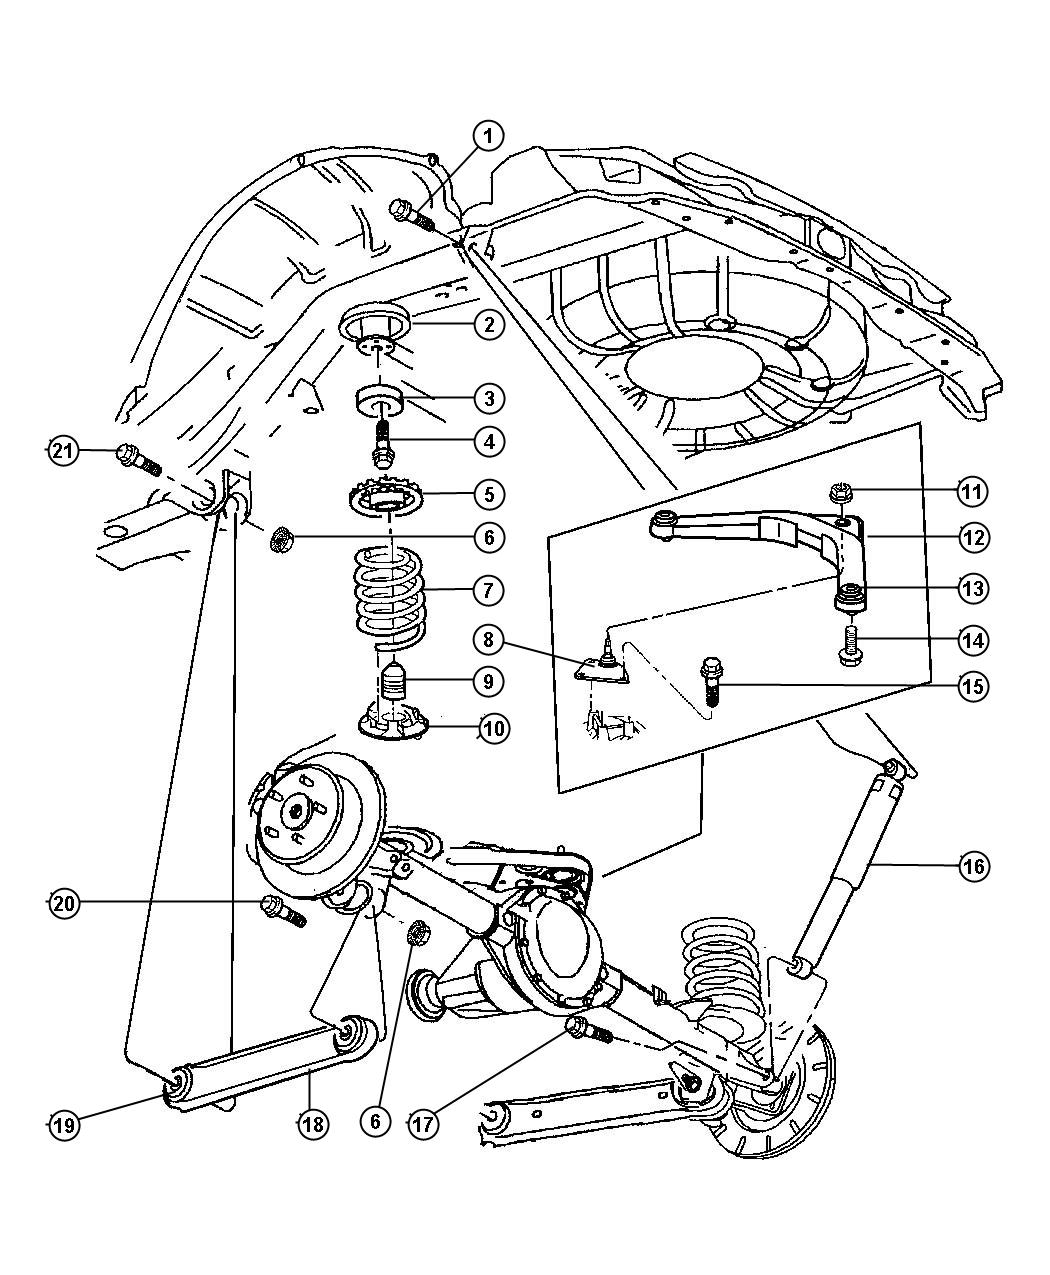 Ford Cop Ignition Wiring Diagrams Com